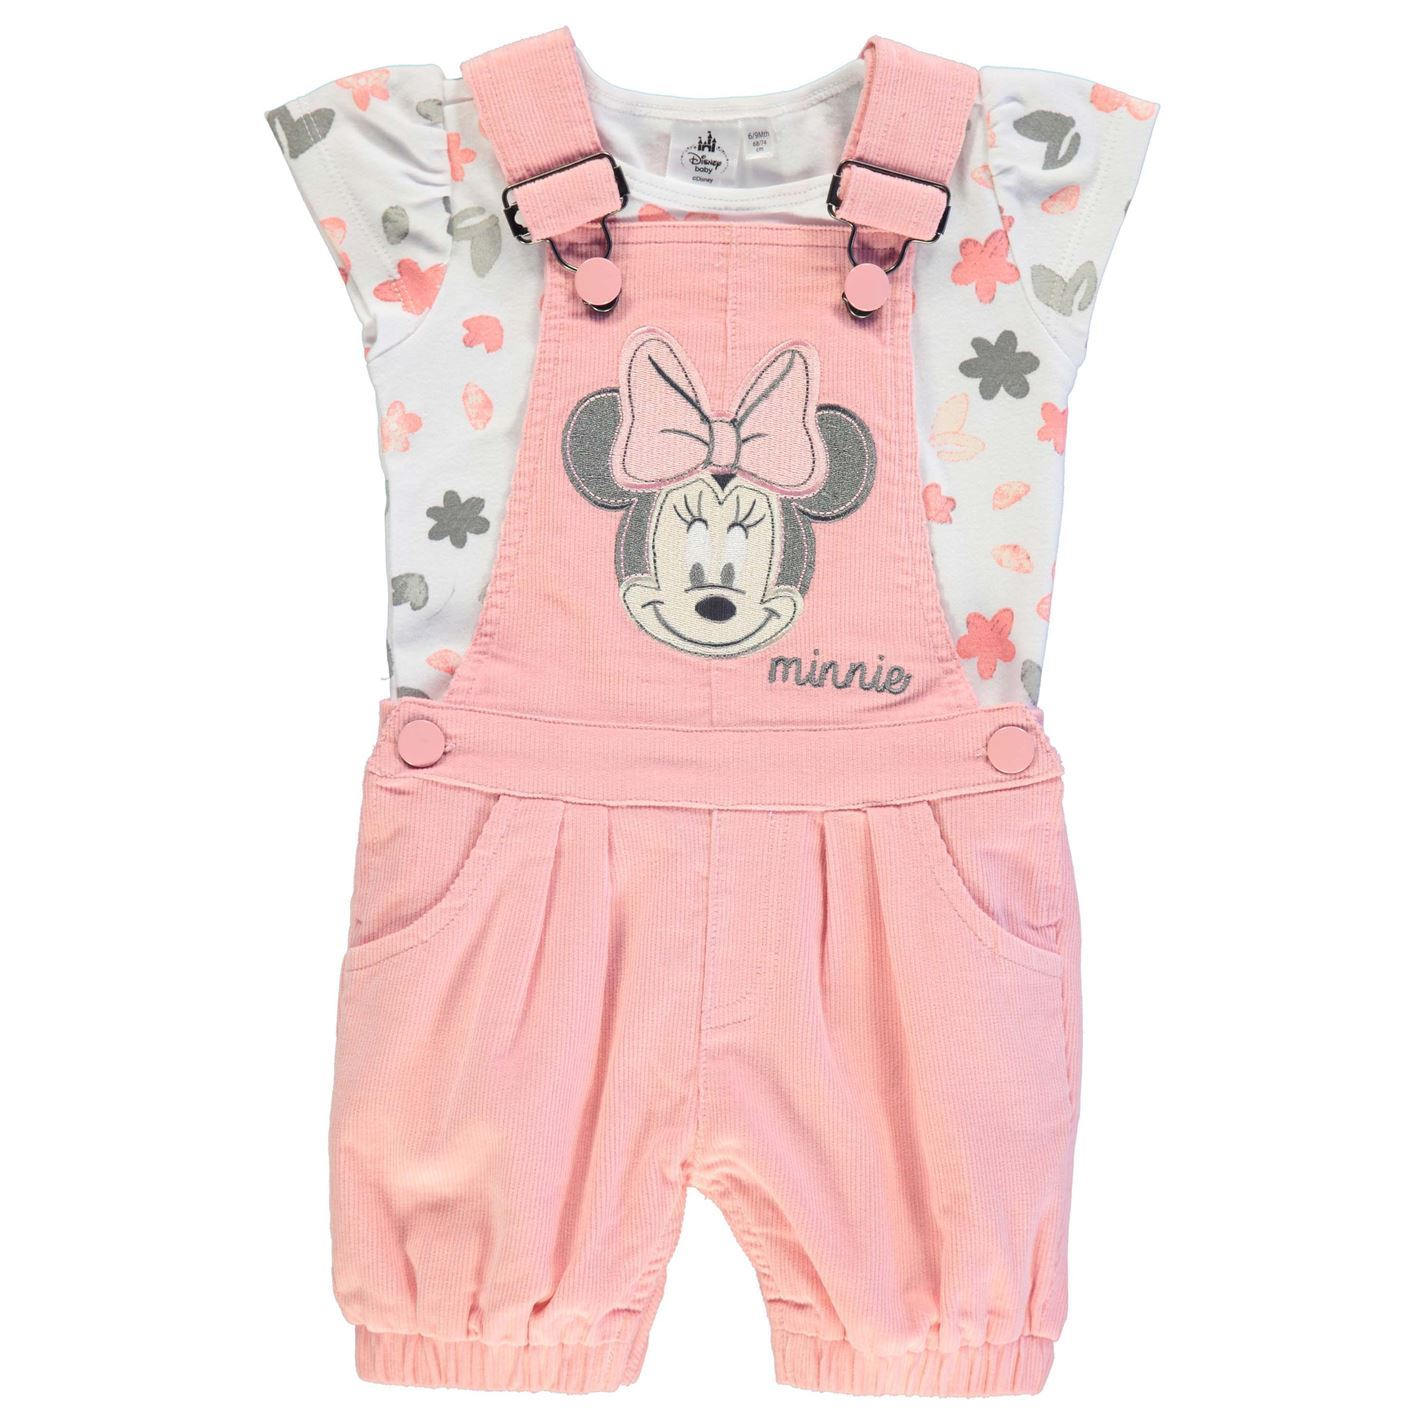 Disney Minnie Mouse Two Piece Dungaree Set Babies Pink White Clothes